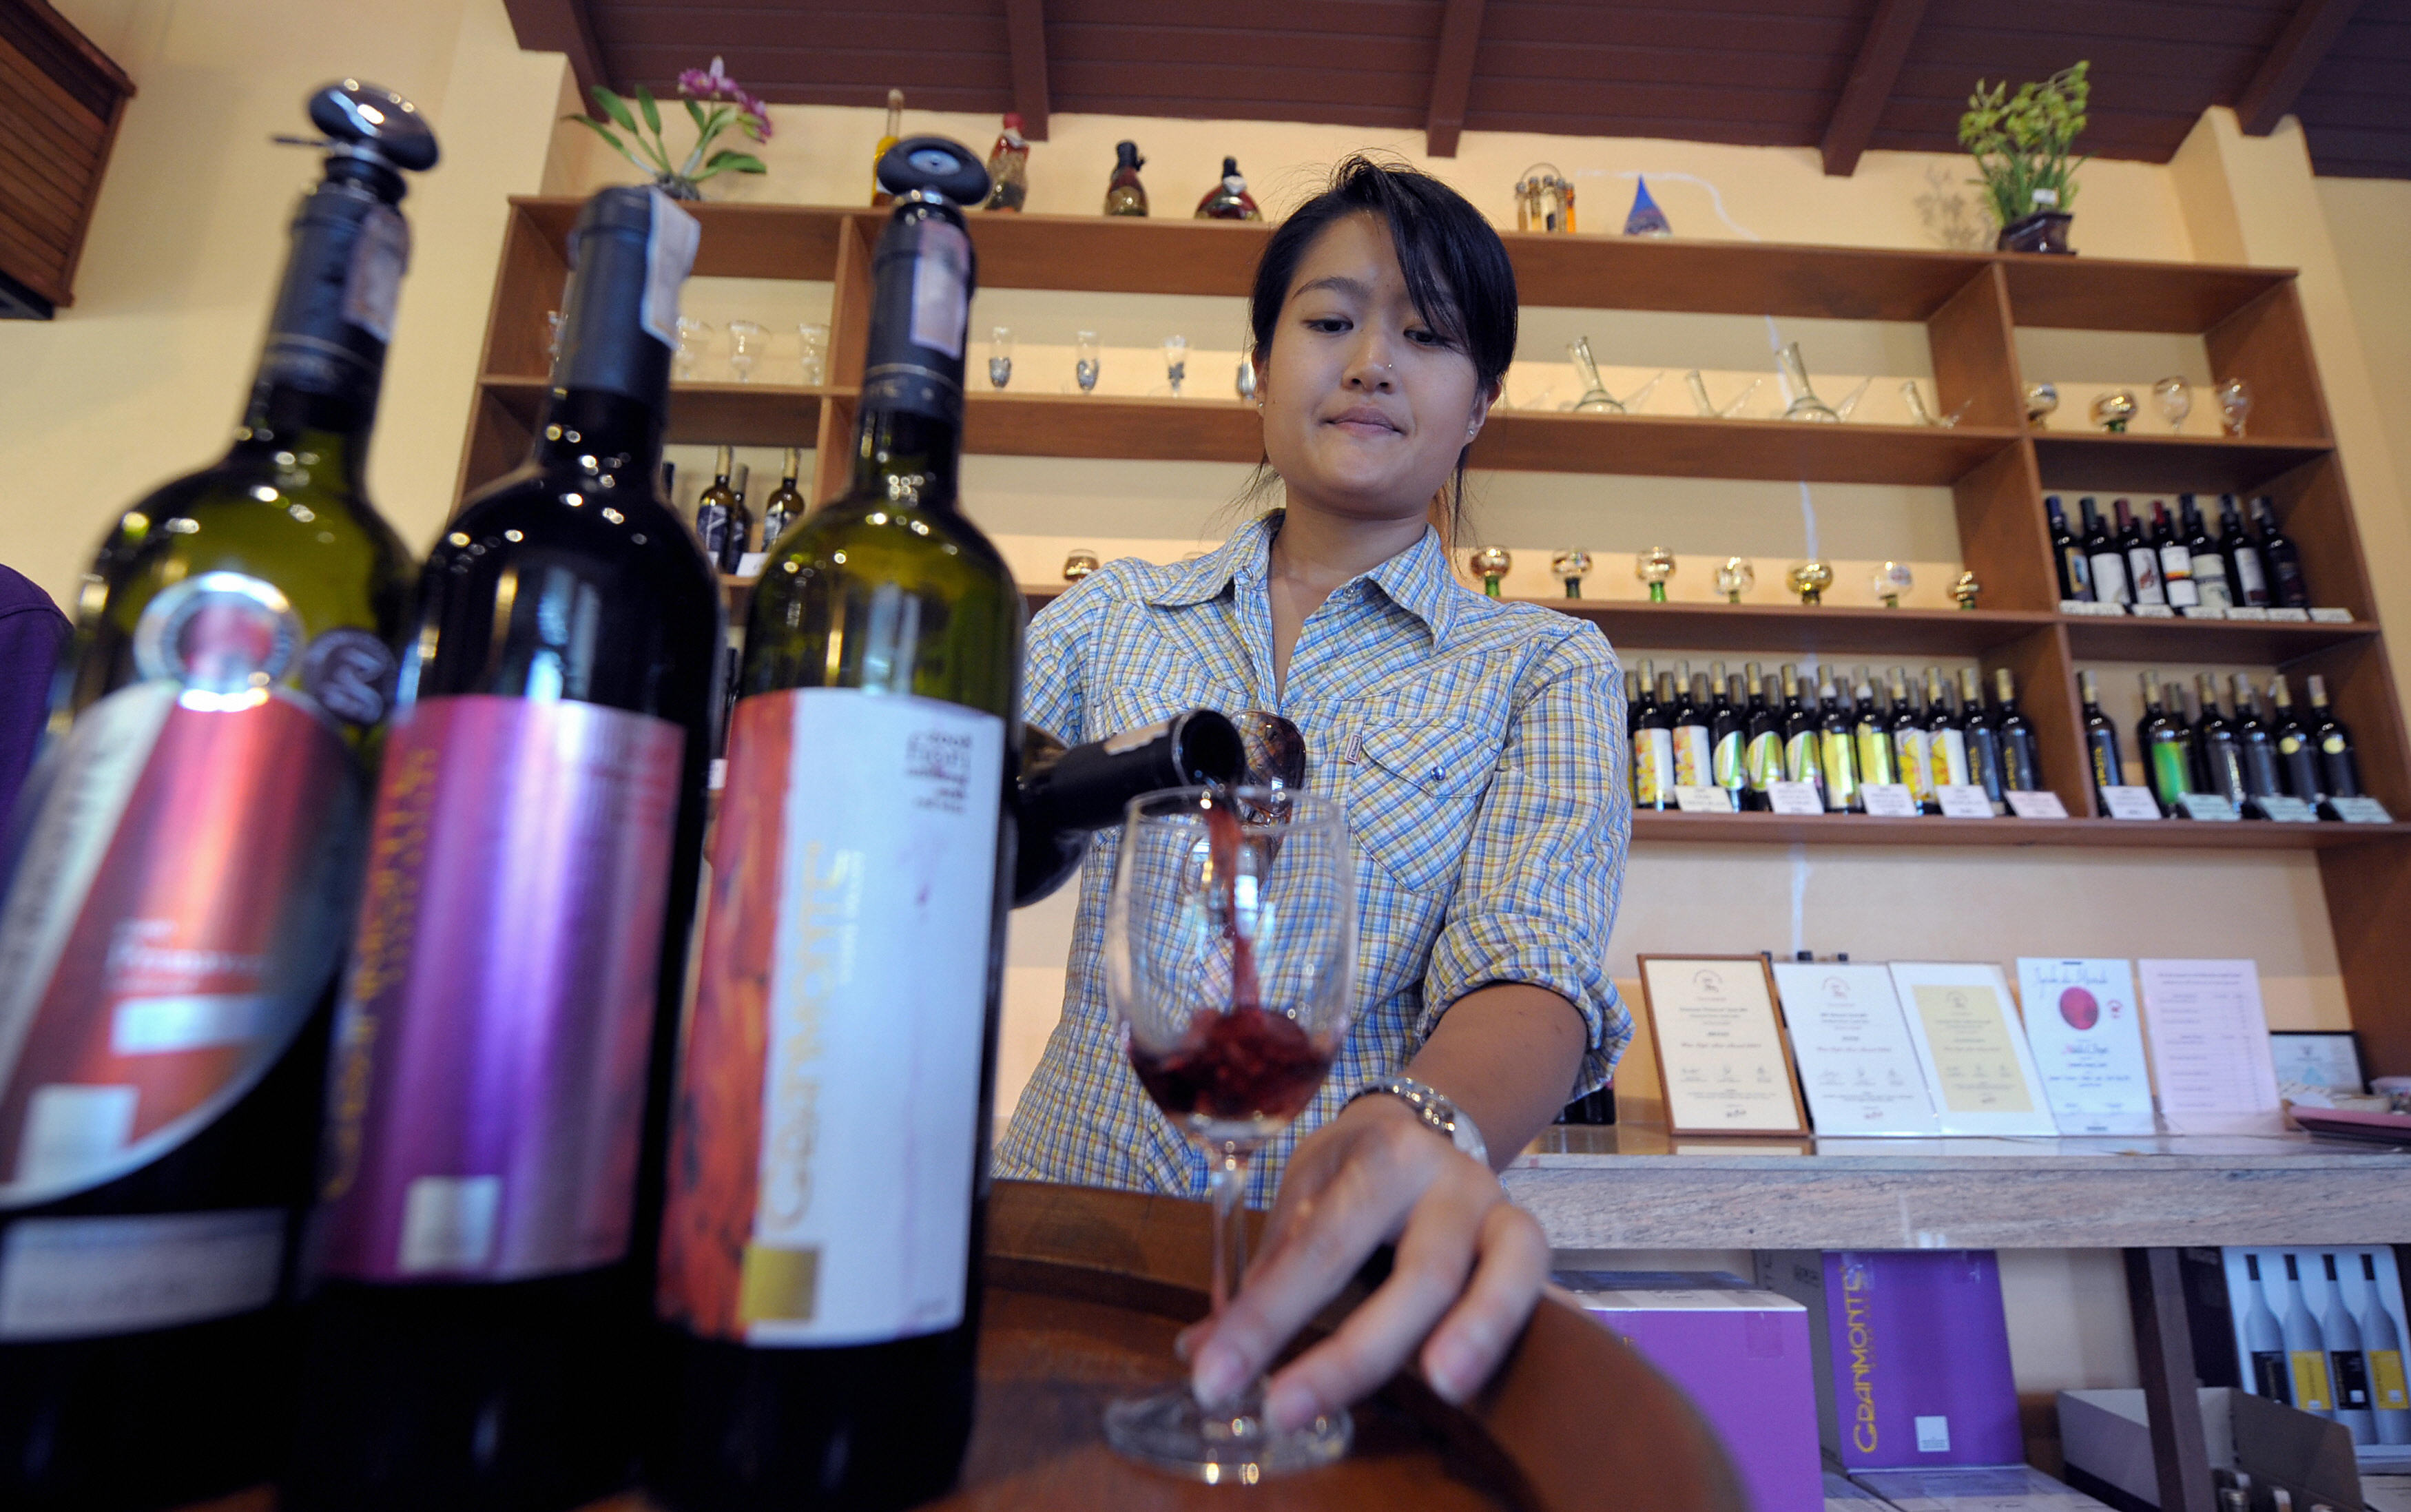 In a picture taken on July 6, 2009, Nikki Lohitnavy, Thailand's first female winemaker tests her wine at a wineshop in Khao Yai National Park 155km (96 miles) north of Bangkok.